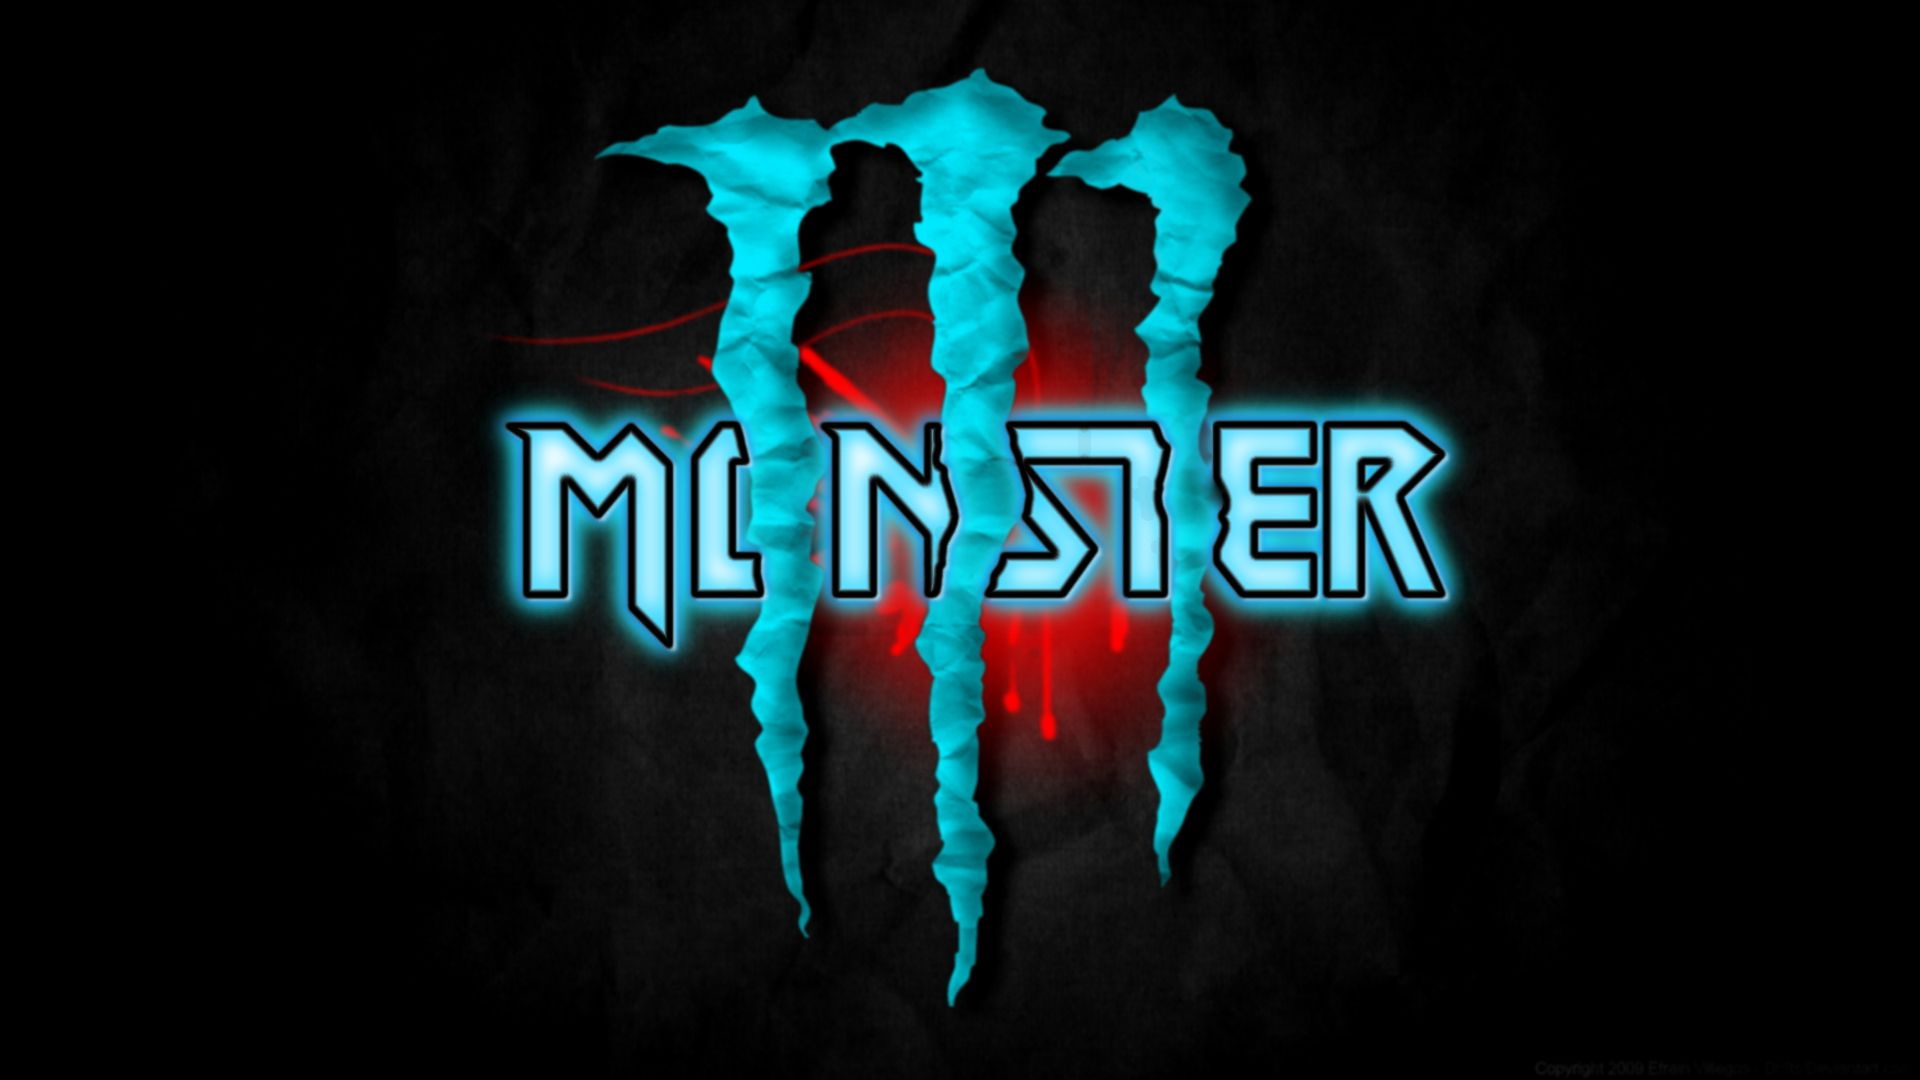 Monster Wallpapers HD | HD Wallpapers | Pinterest | Wallpaper And Monsters